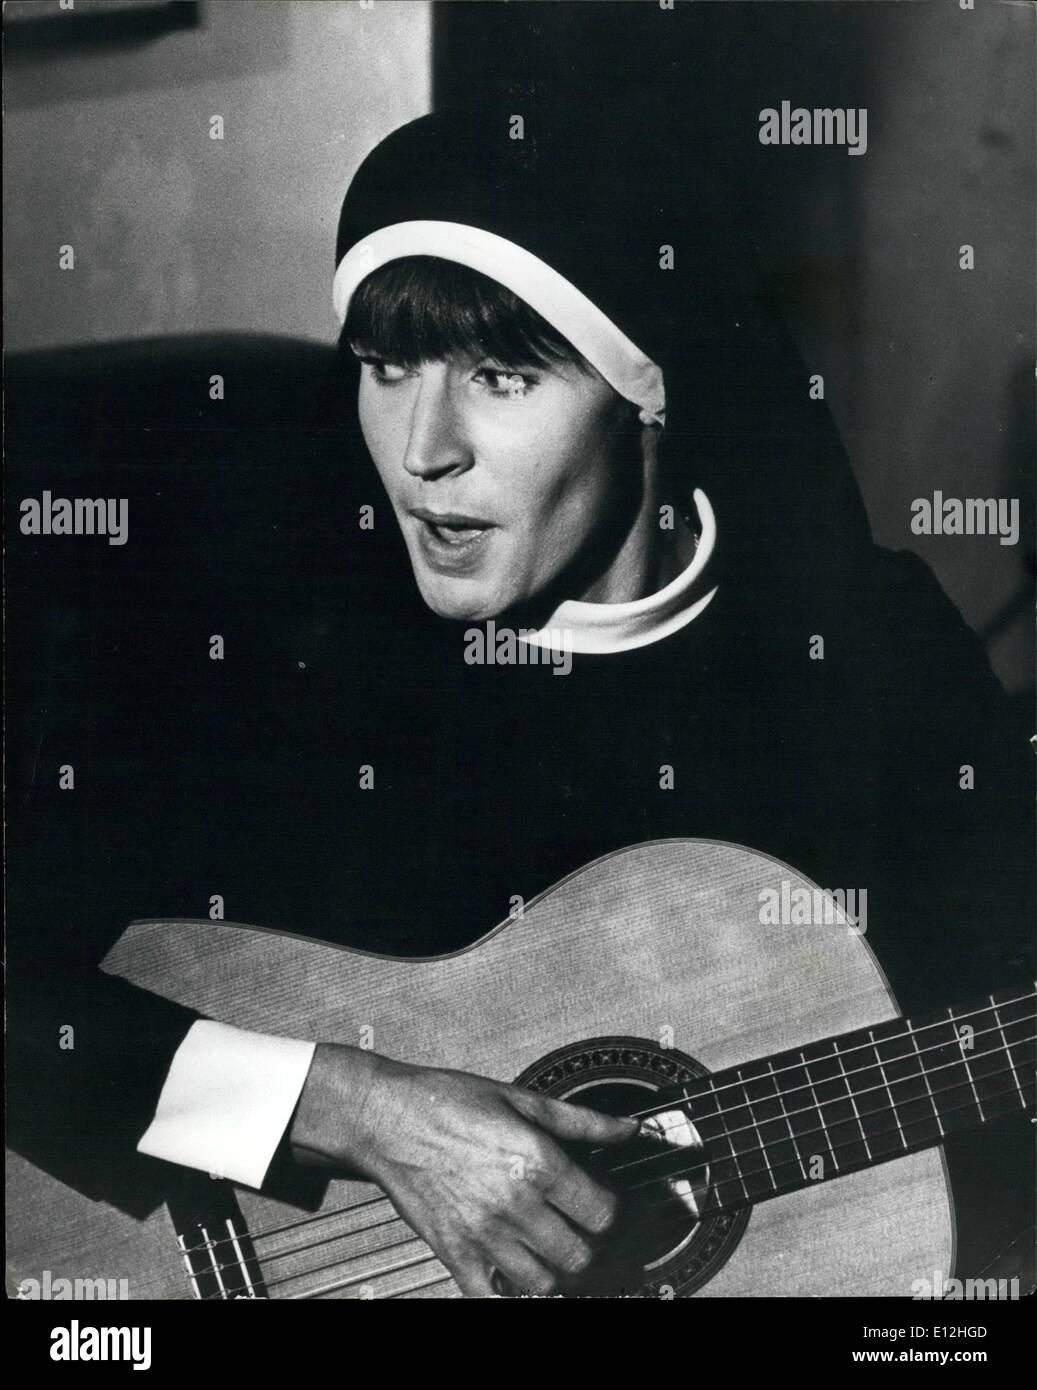 Feb. 24, 2012 - Recording Star Turns Num: Popular recording star Helen Redy has become a nun. At least for the purpose of a new - Stock Image